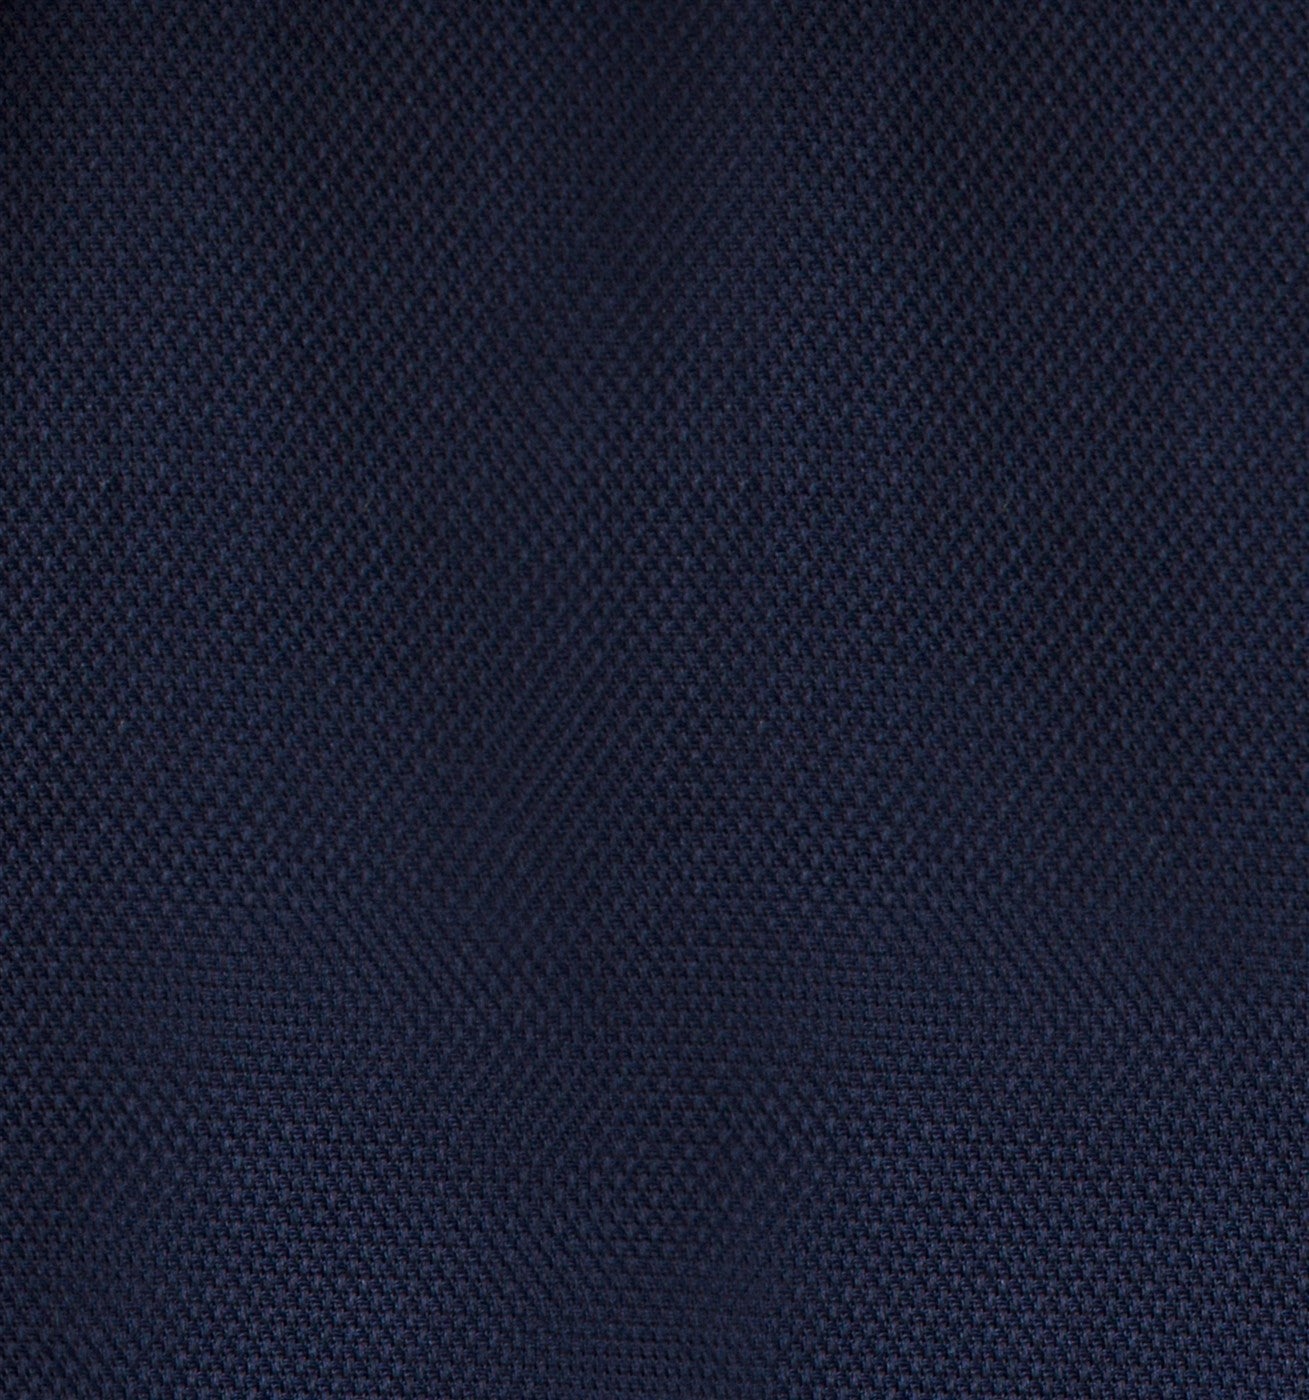 Navy Oxford (Italian Cotton)